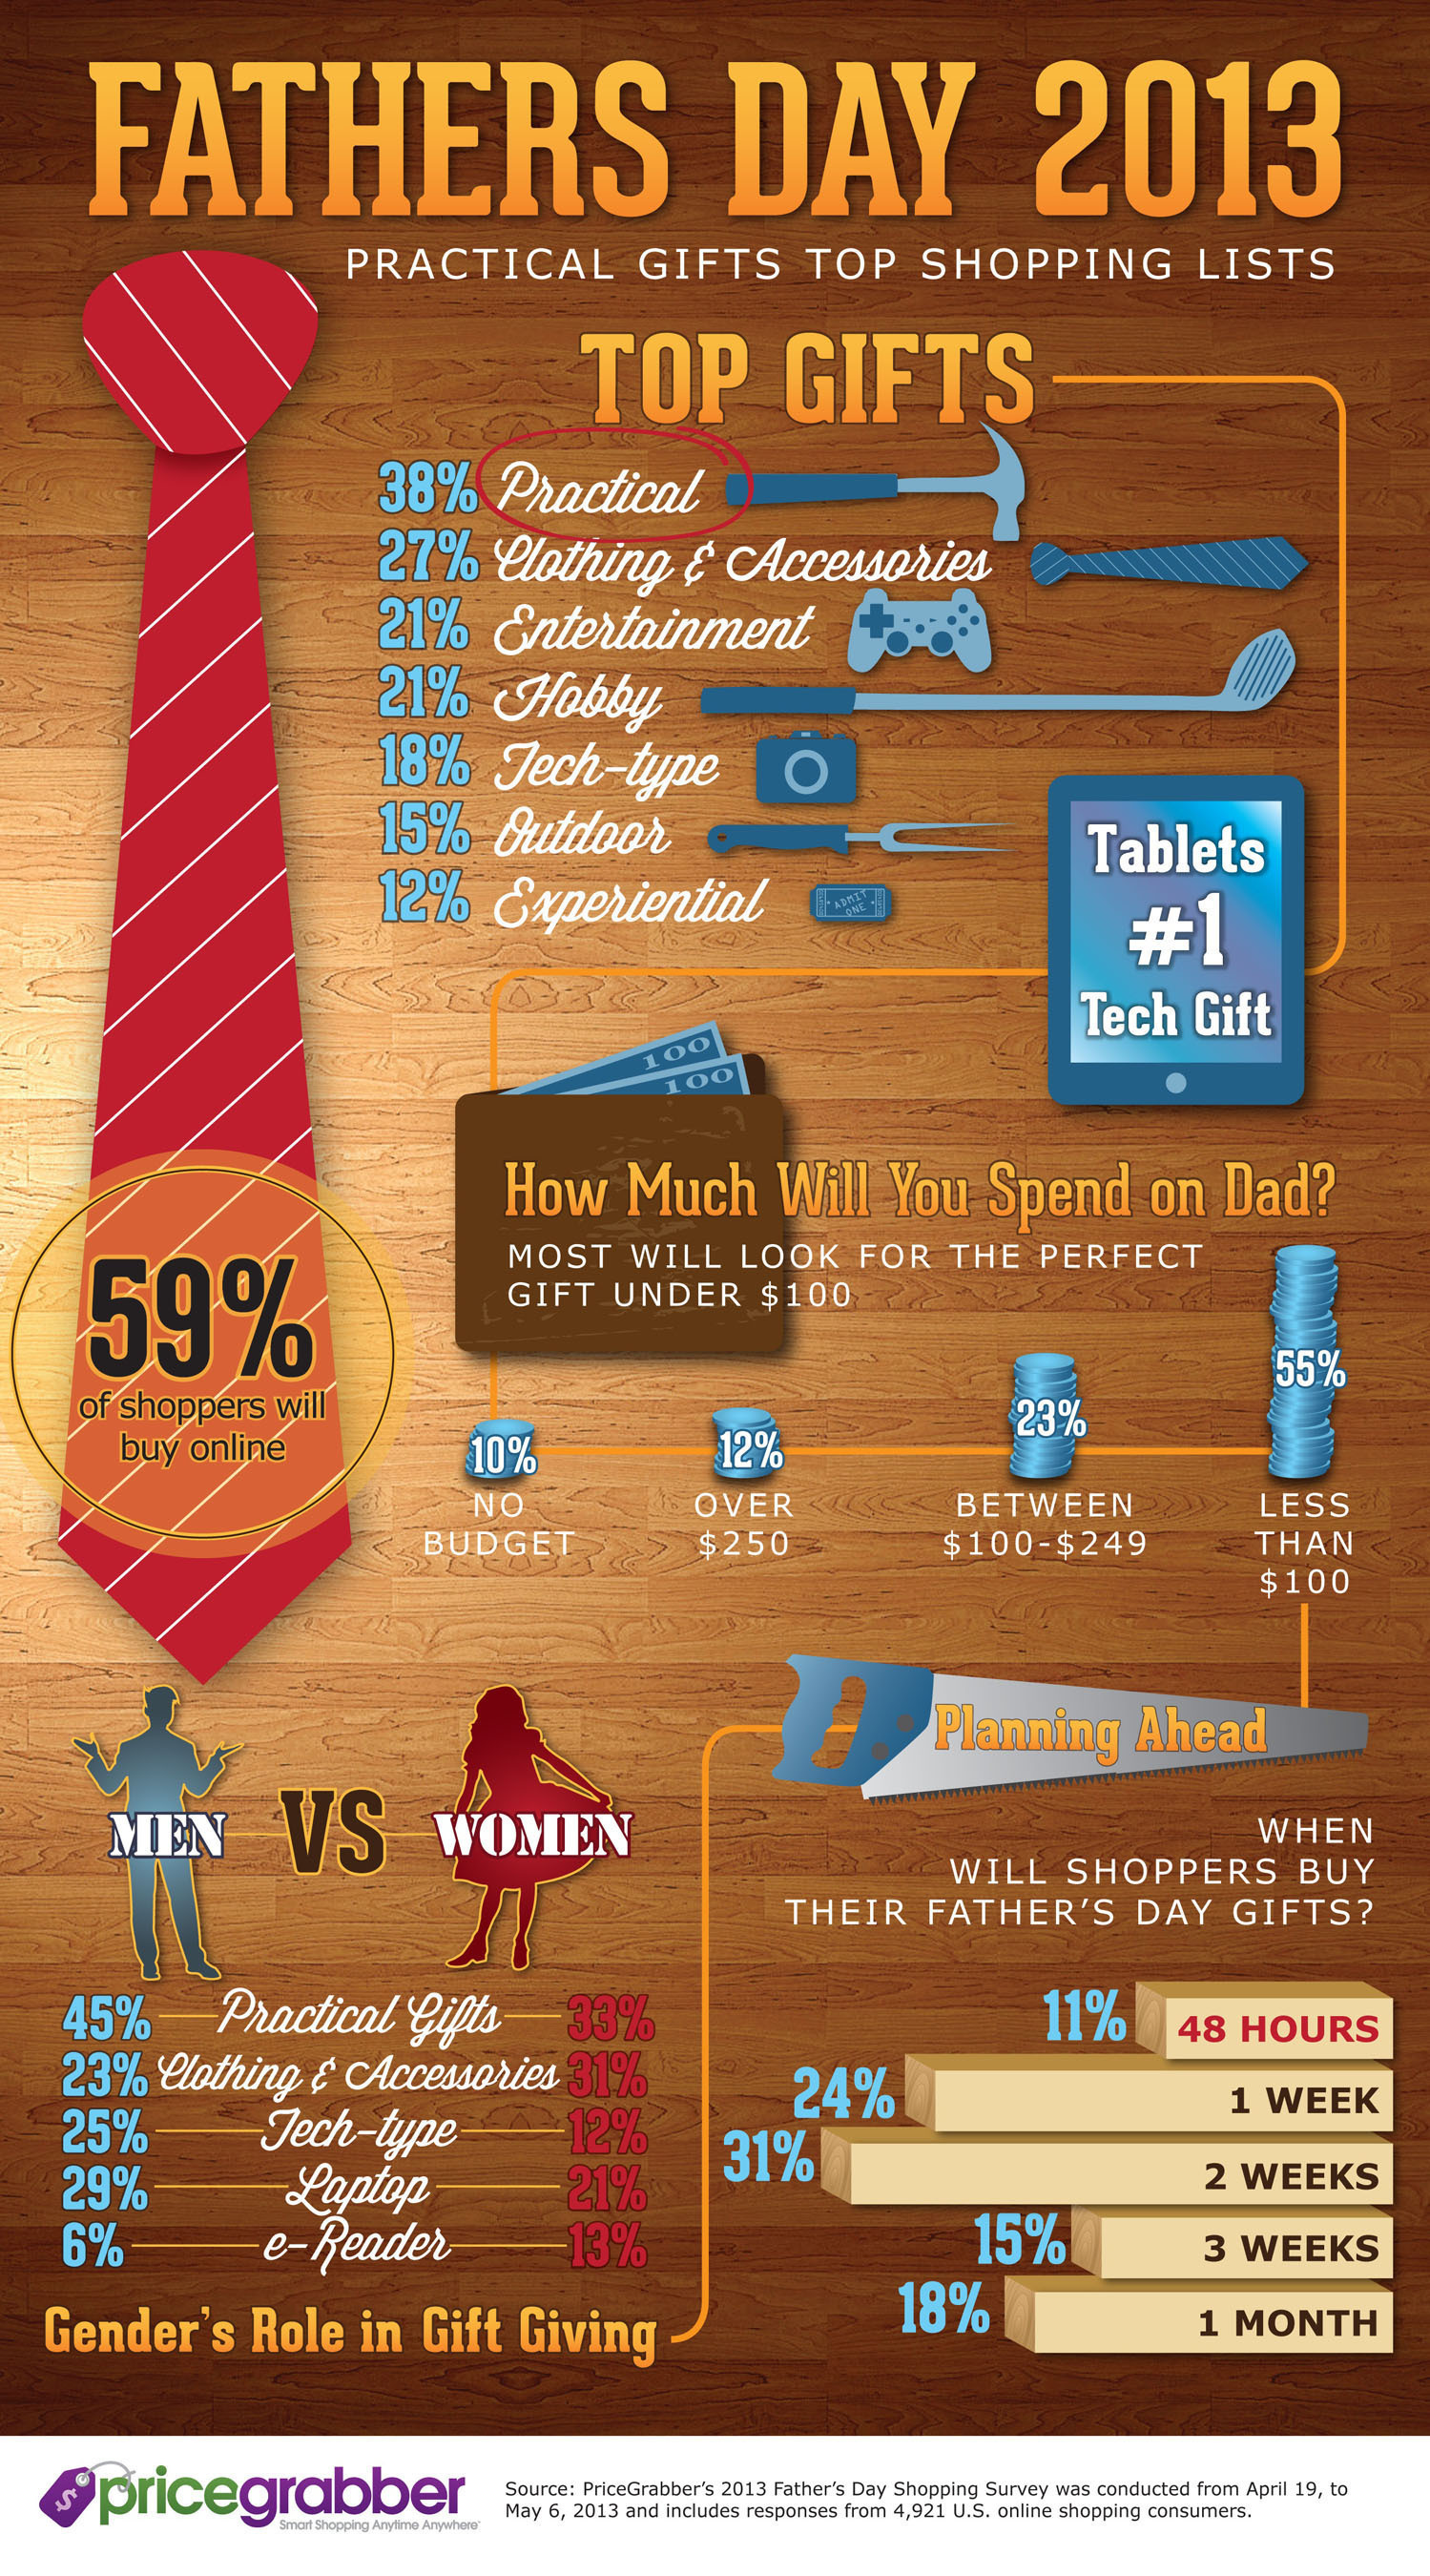 PriceGrabber® Reveals Father's Day Survey Results: Practical Gifts Top Shopping Lists